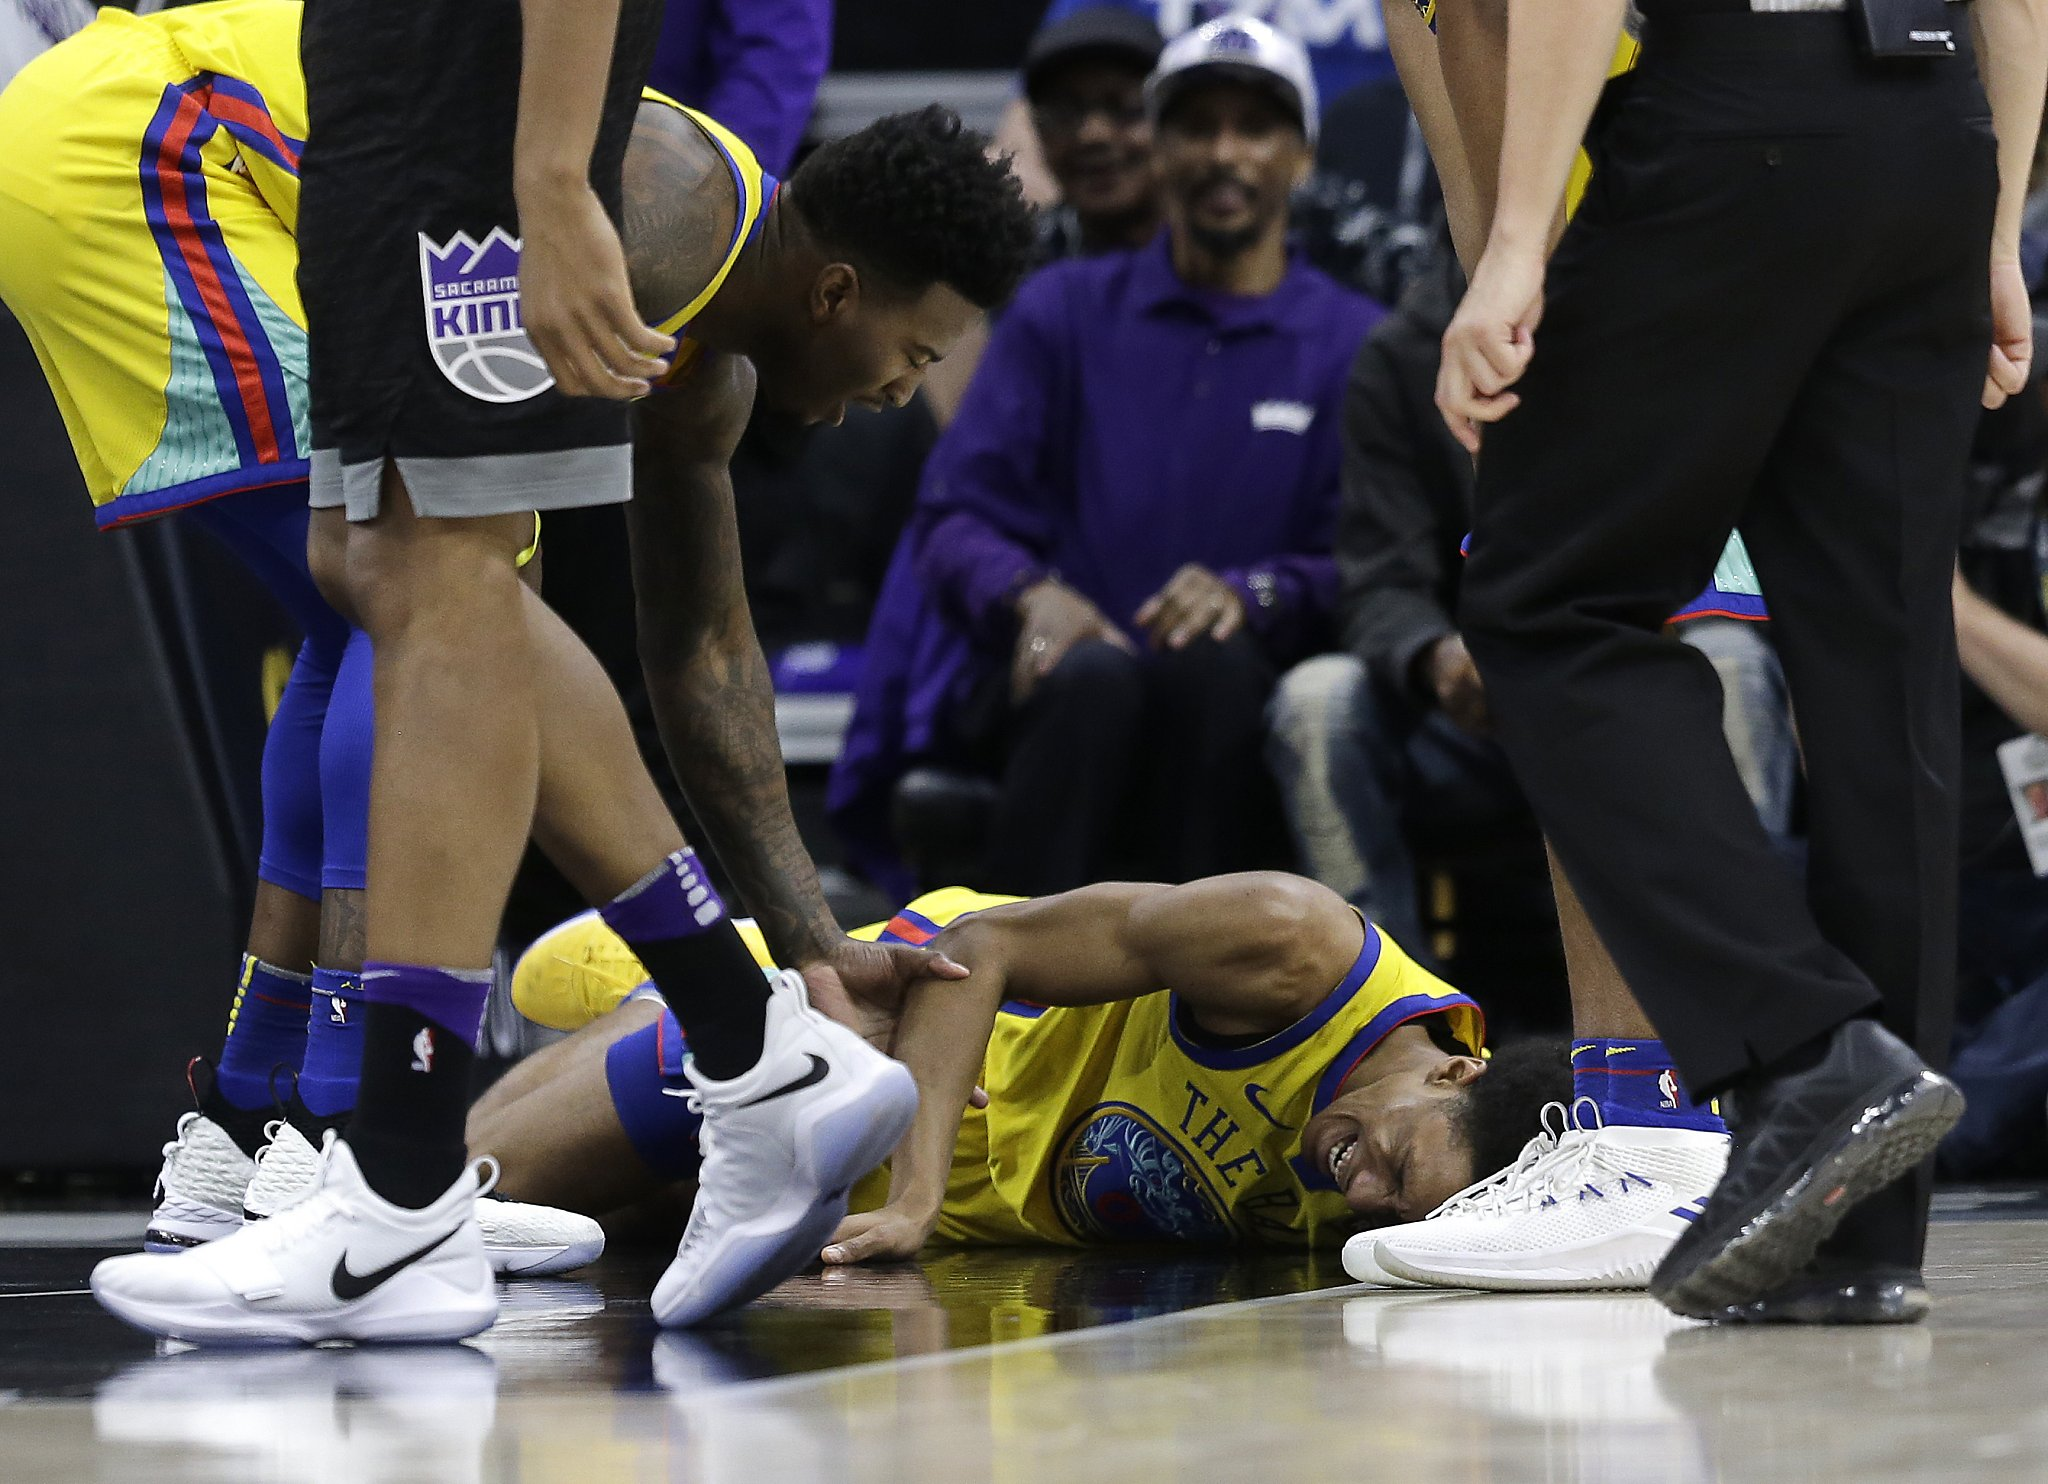 Patrick McCaw on spine injury: 'I'm just thankful to be able to stand'